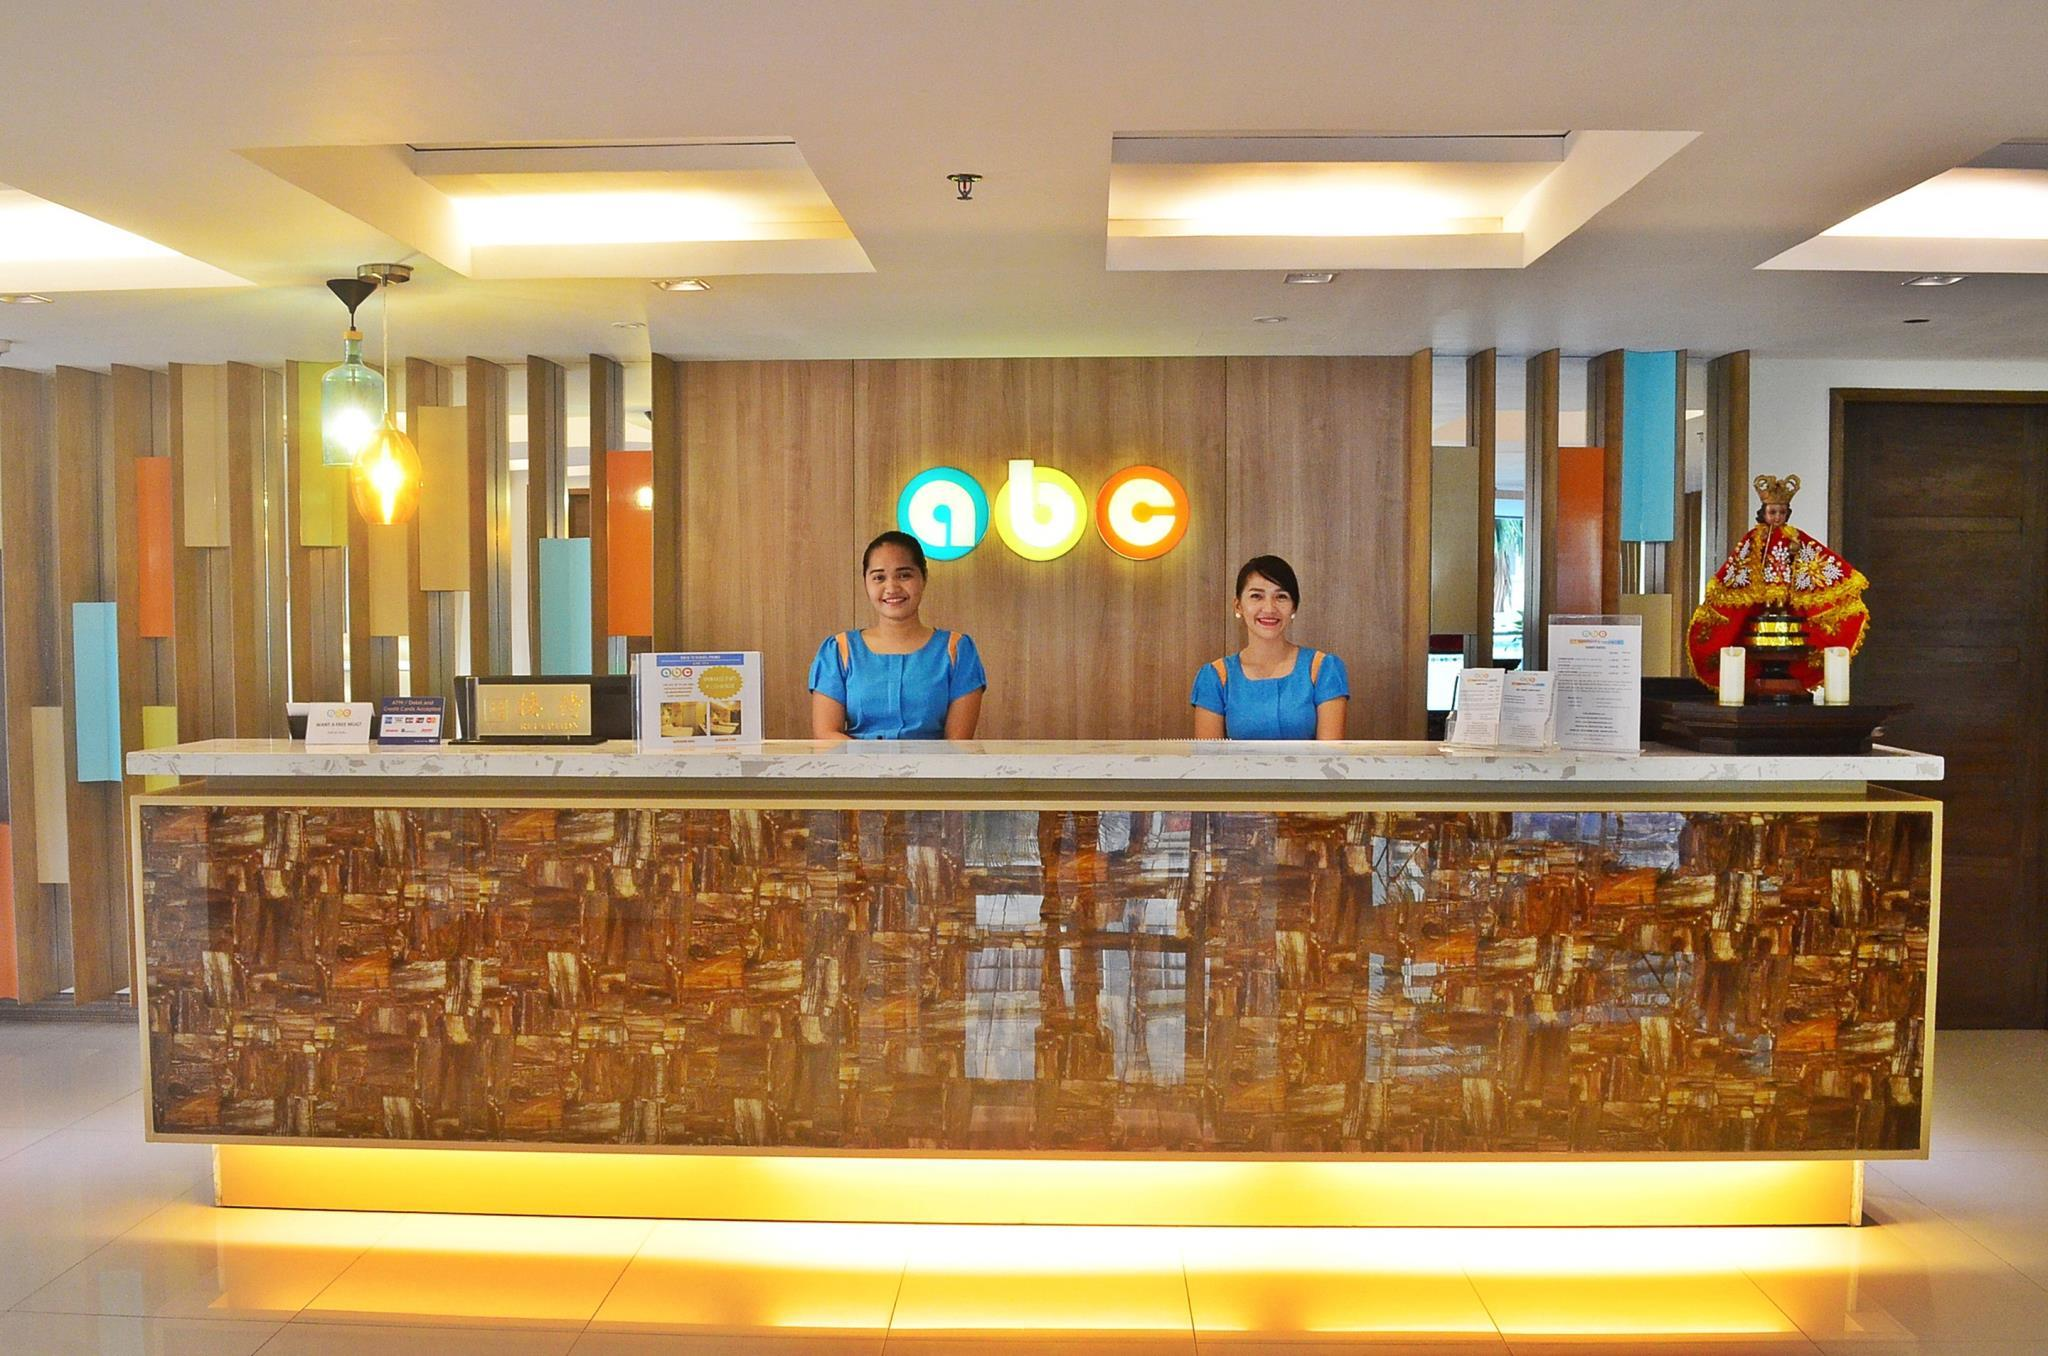 Adelaida Pensionne Hotel Abc Hotel Cebu Guest Friendly Cebu Guest Friendly Hotels